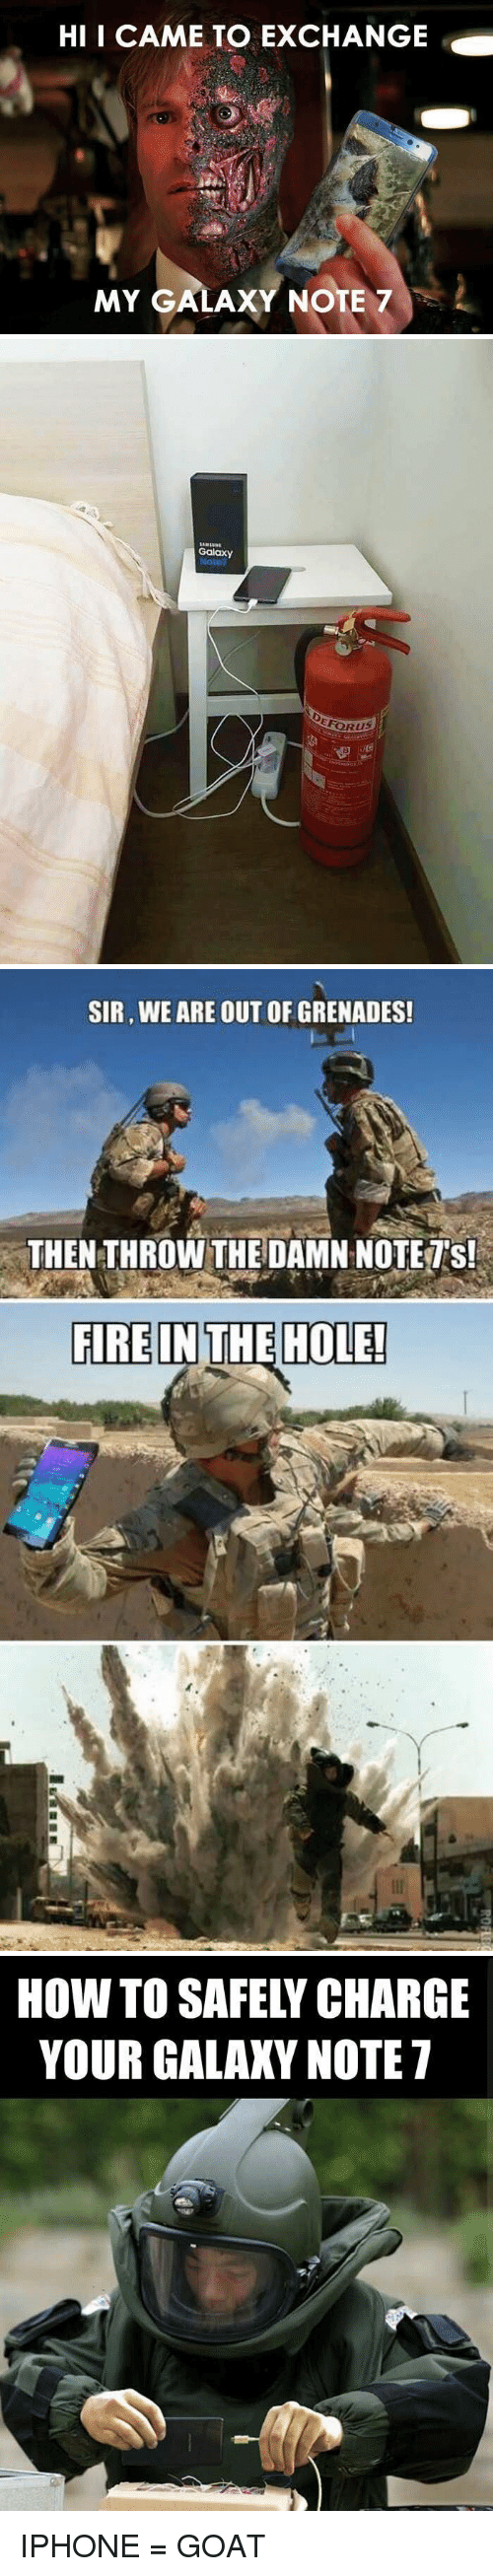 Galaxy Note 7: HI I CAME TO EXCHANGE  MY GALAXY NOTE 7   Galaxy   SIR, WE ARE OUT OF GRENADES!  THEN THROW THE DAMN NOTE TS!  FIRE IN THE HOLE!   HOW TO SAFELY CHARGE  YOUR GALAXY NOTE 7 IPHONE = GOAT